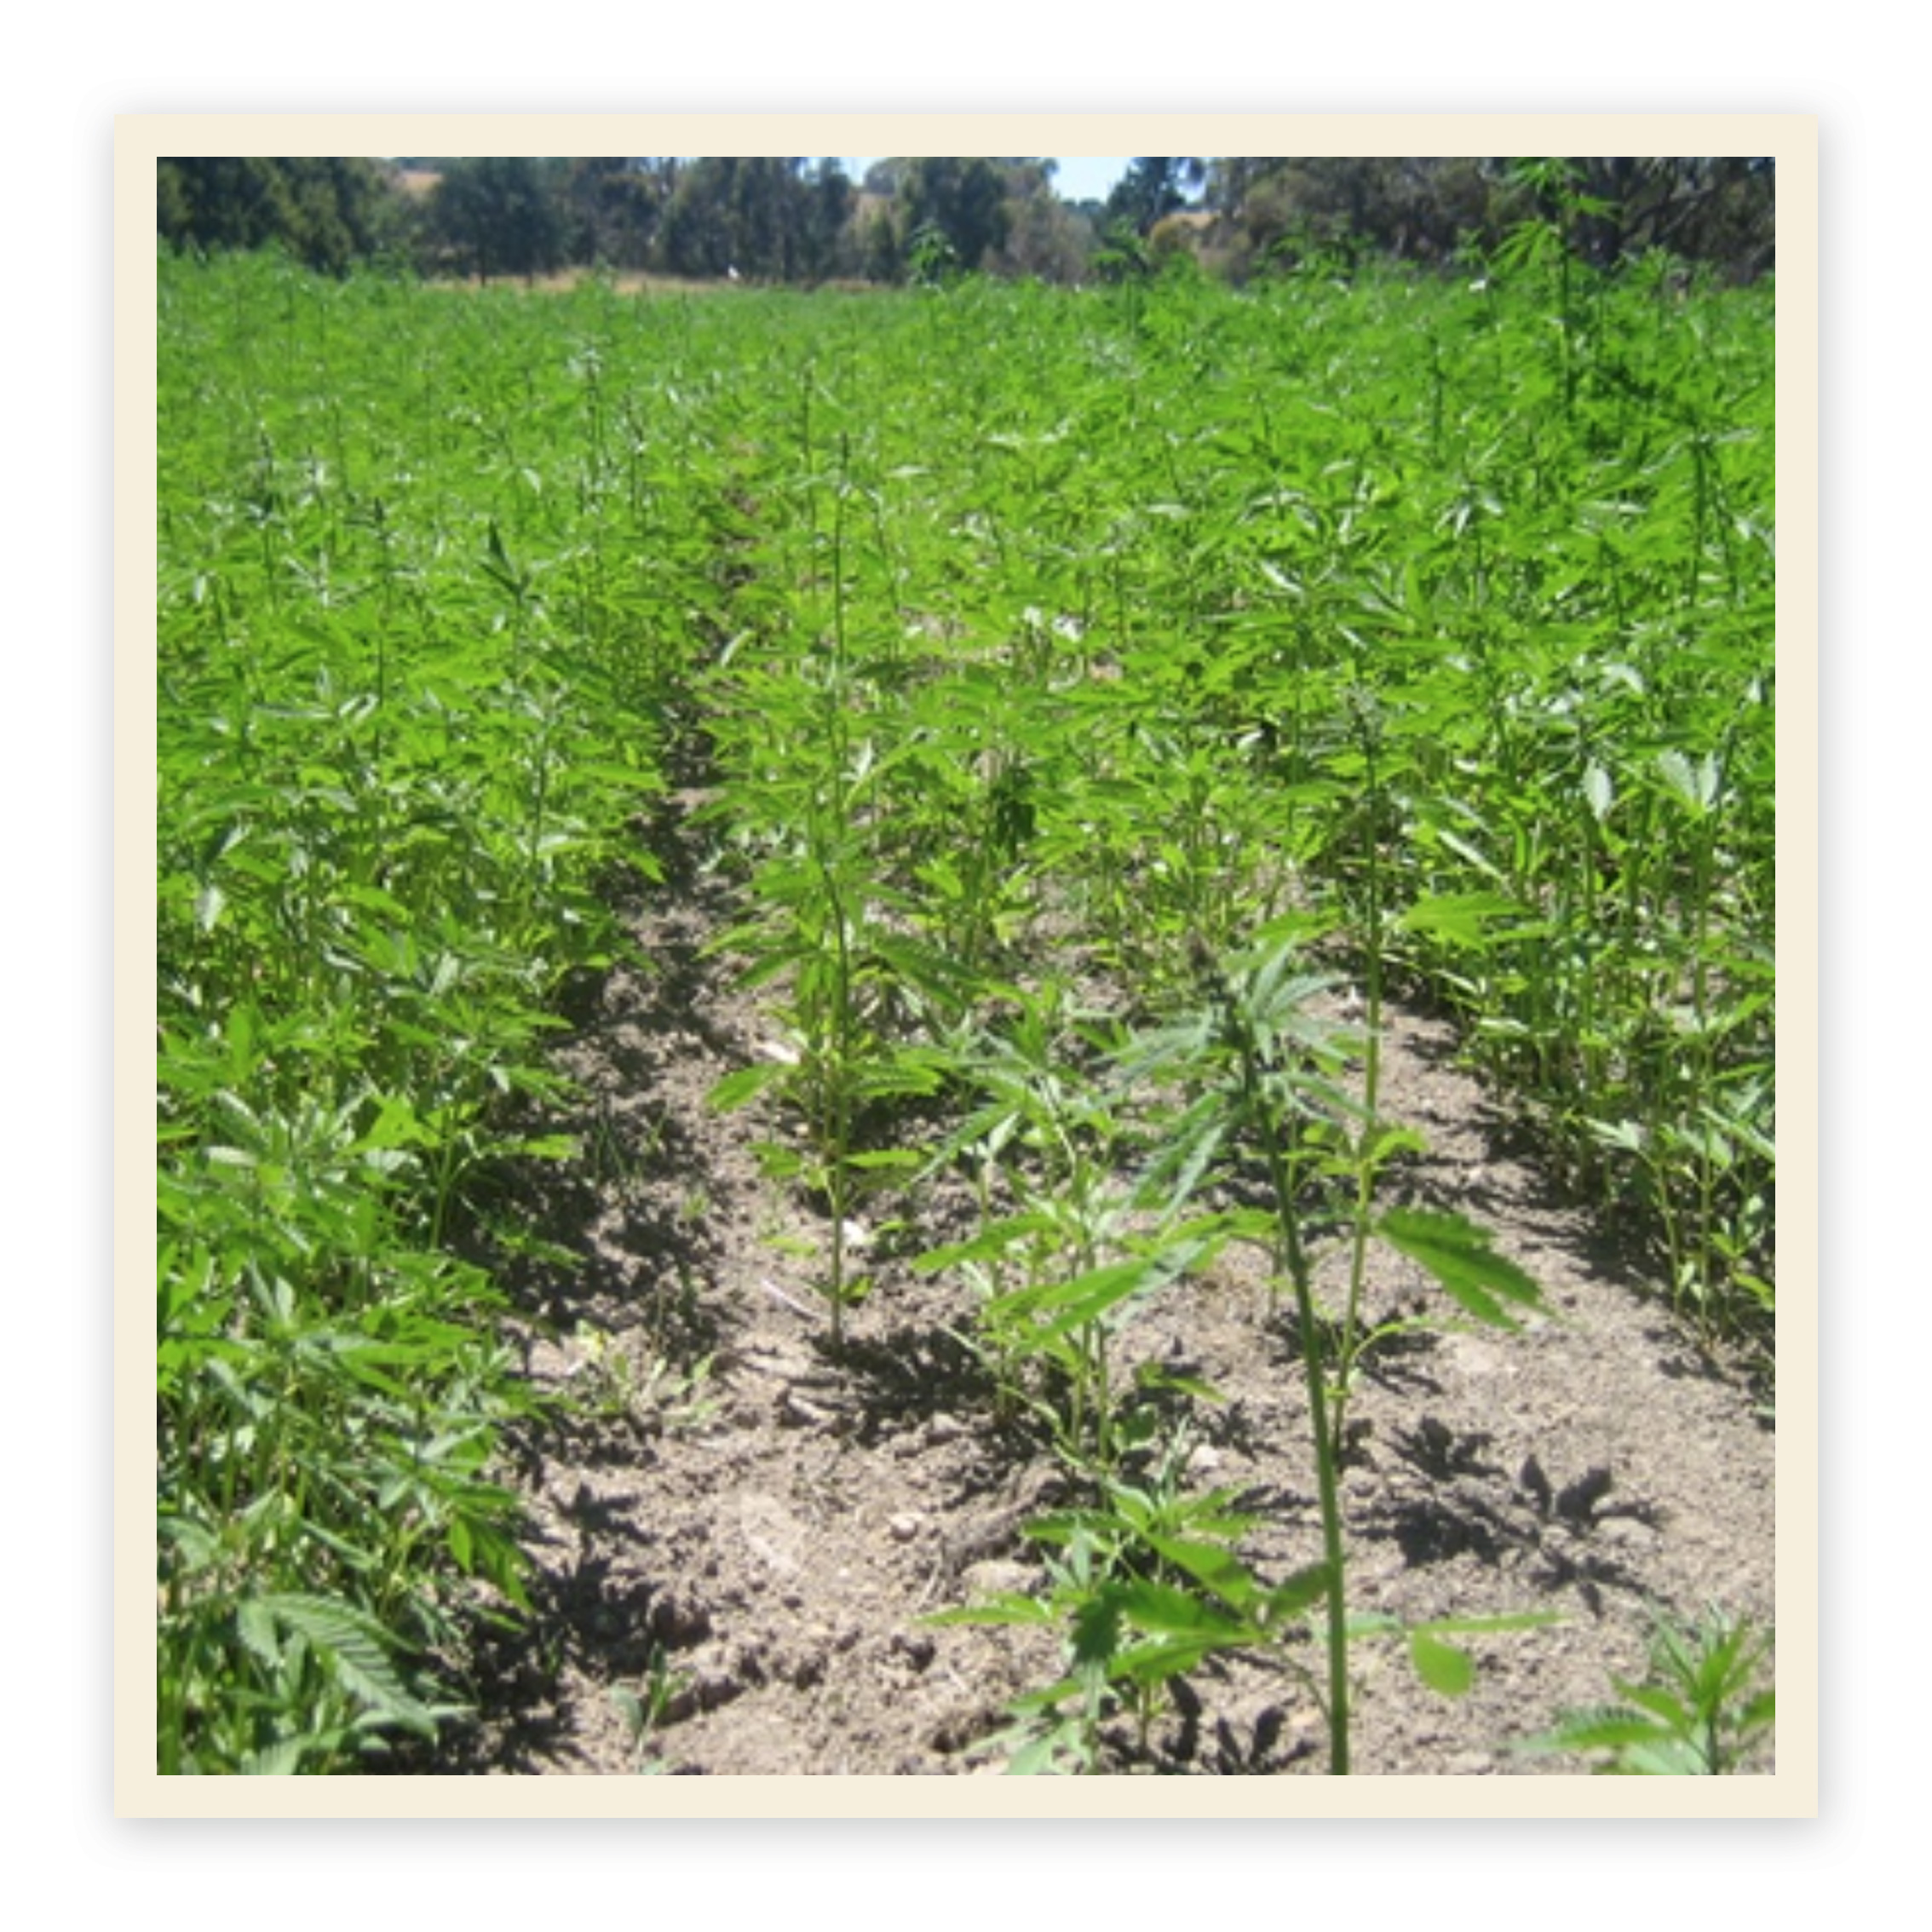 A new AgriFutures Australia project will seed the future of industrial hemp – an ancient fibre crop earmarked as having potential to exceed $10 million as an emerging food and fibre industry by 2025.